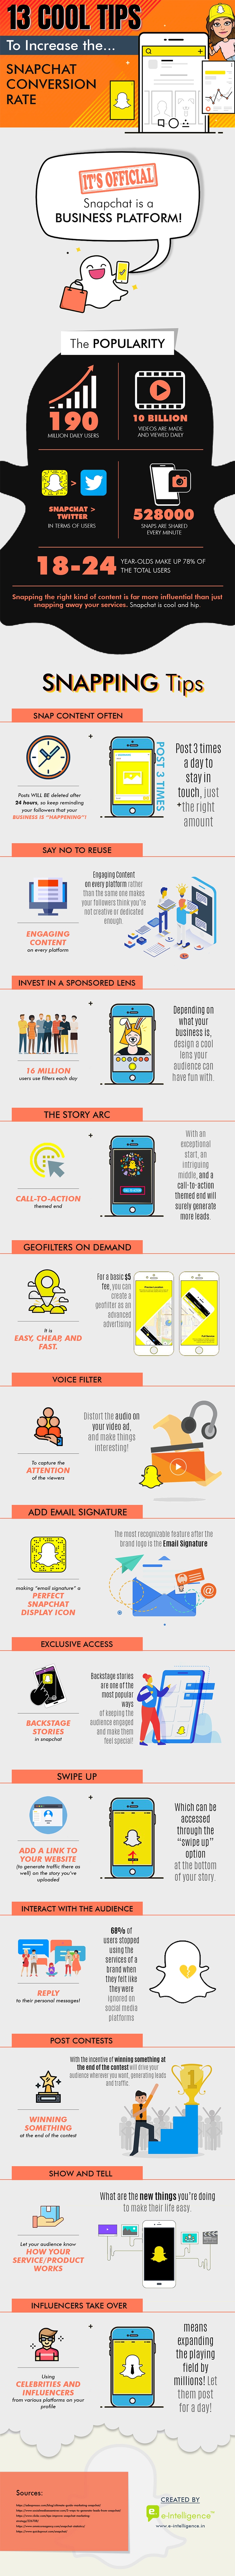 Snapchat tips infographic